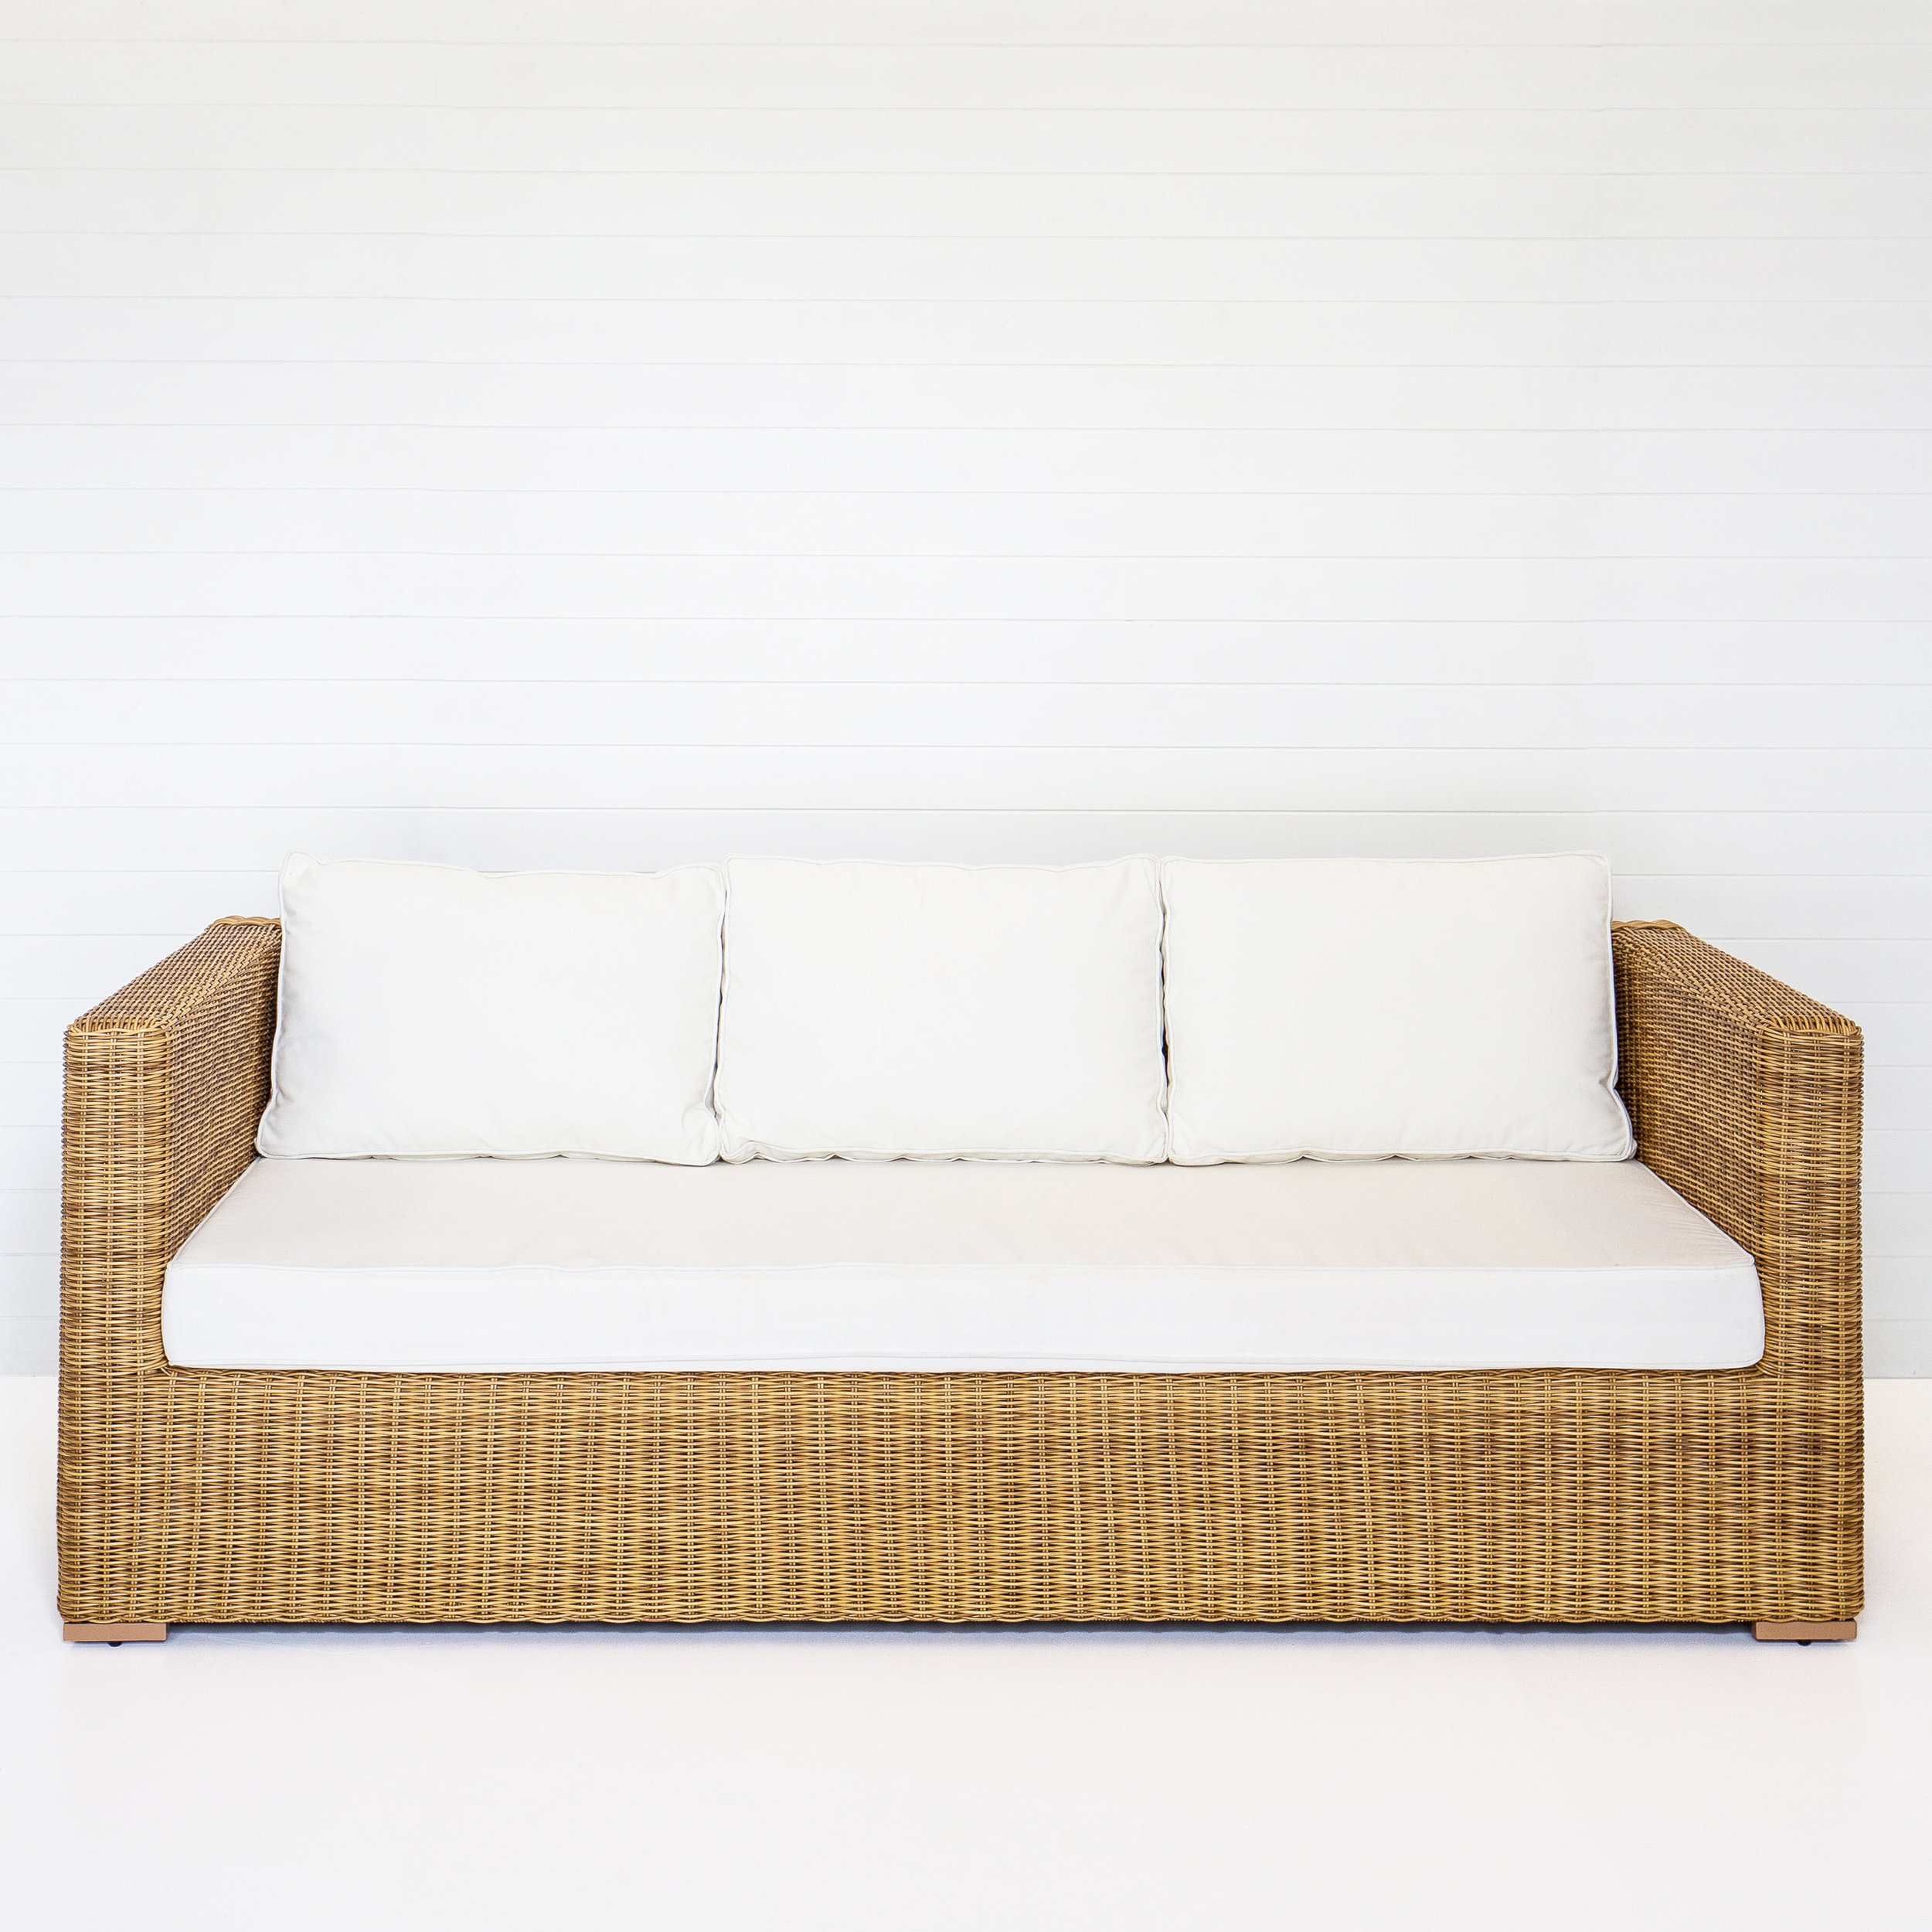 DUNE THREE SEATER SOFA (WITH ARMS) WITH WHITE CUSHIONS